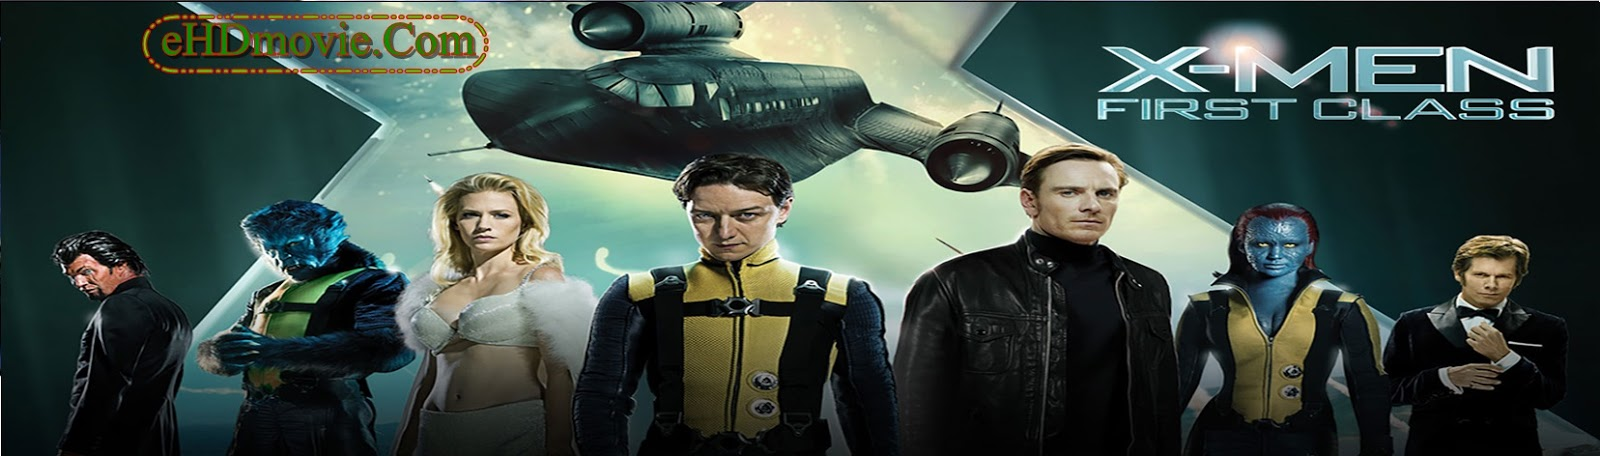 X-Men: First Class 2011 Full Movie Dual Audio [Hindi – English] 1080p - 720p - 480p ORG BRRip 400MB - 750MB - 2.7GB ESubs Free Download